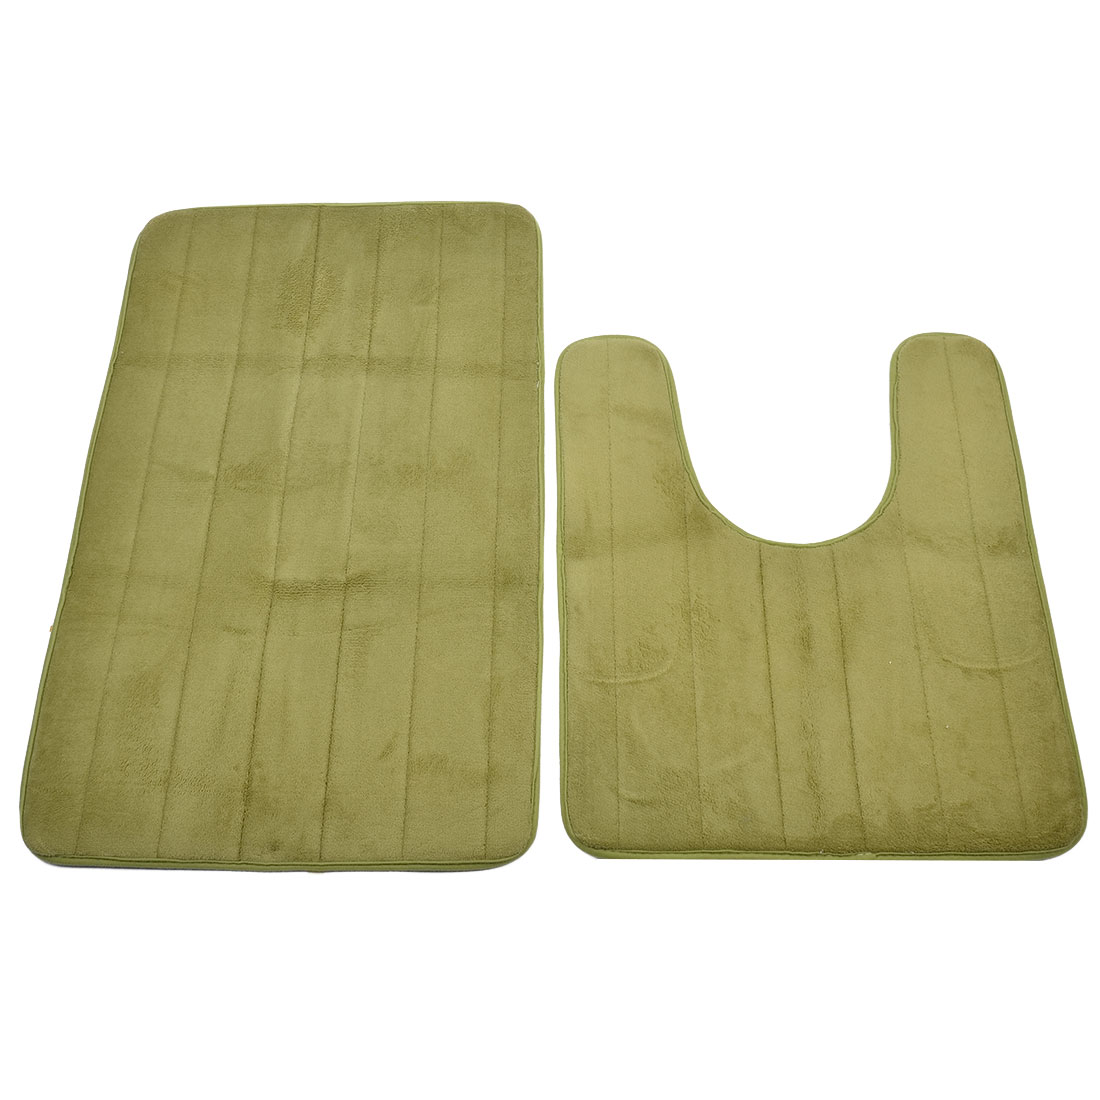 Bath Coral Fleece Floor Nonslip Washable Mat Pad Carpet Rug Doormat Green 2 in 1